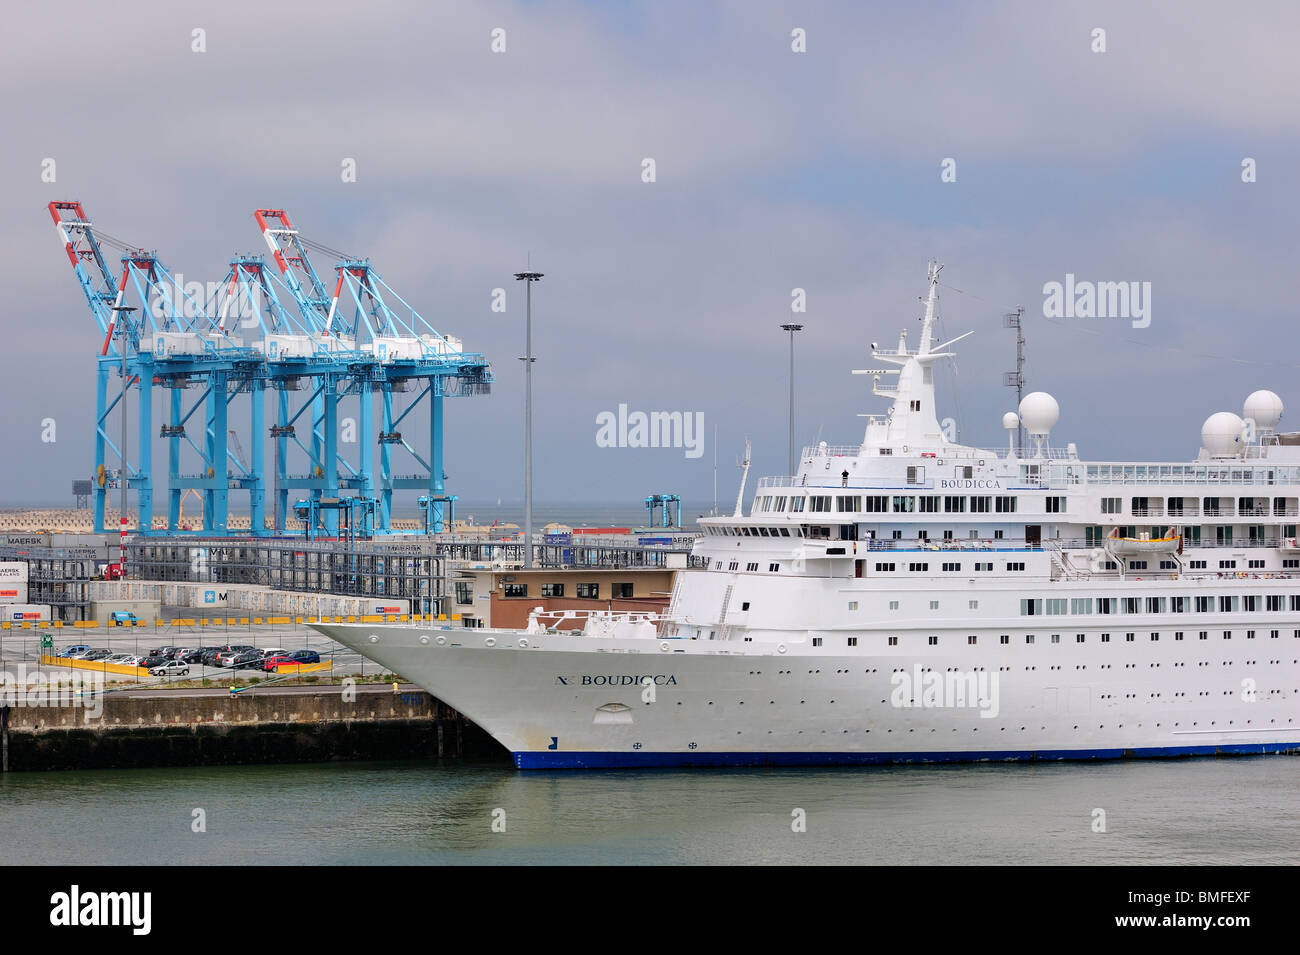 Cruise ship and container terminal cranes of the port of zeebrugge stock photo royalty free - Where is zeebrugge ferry port ...